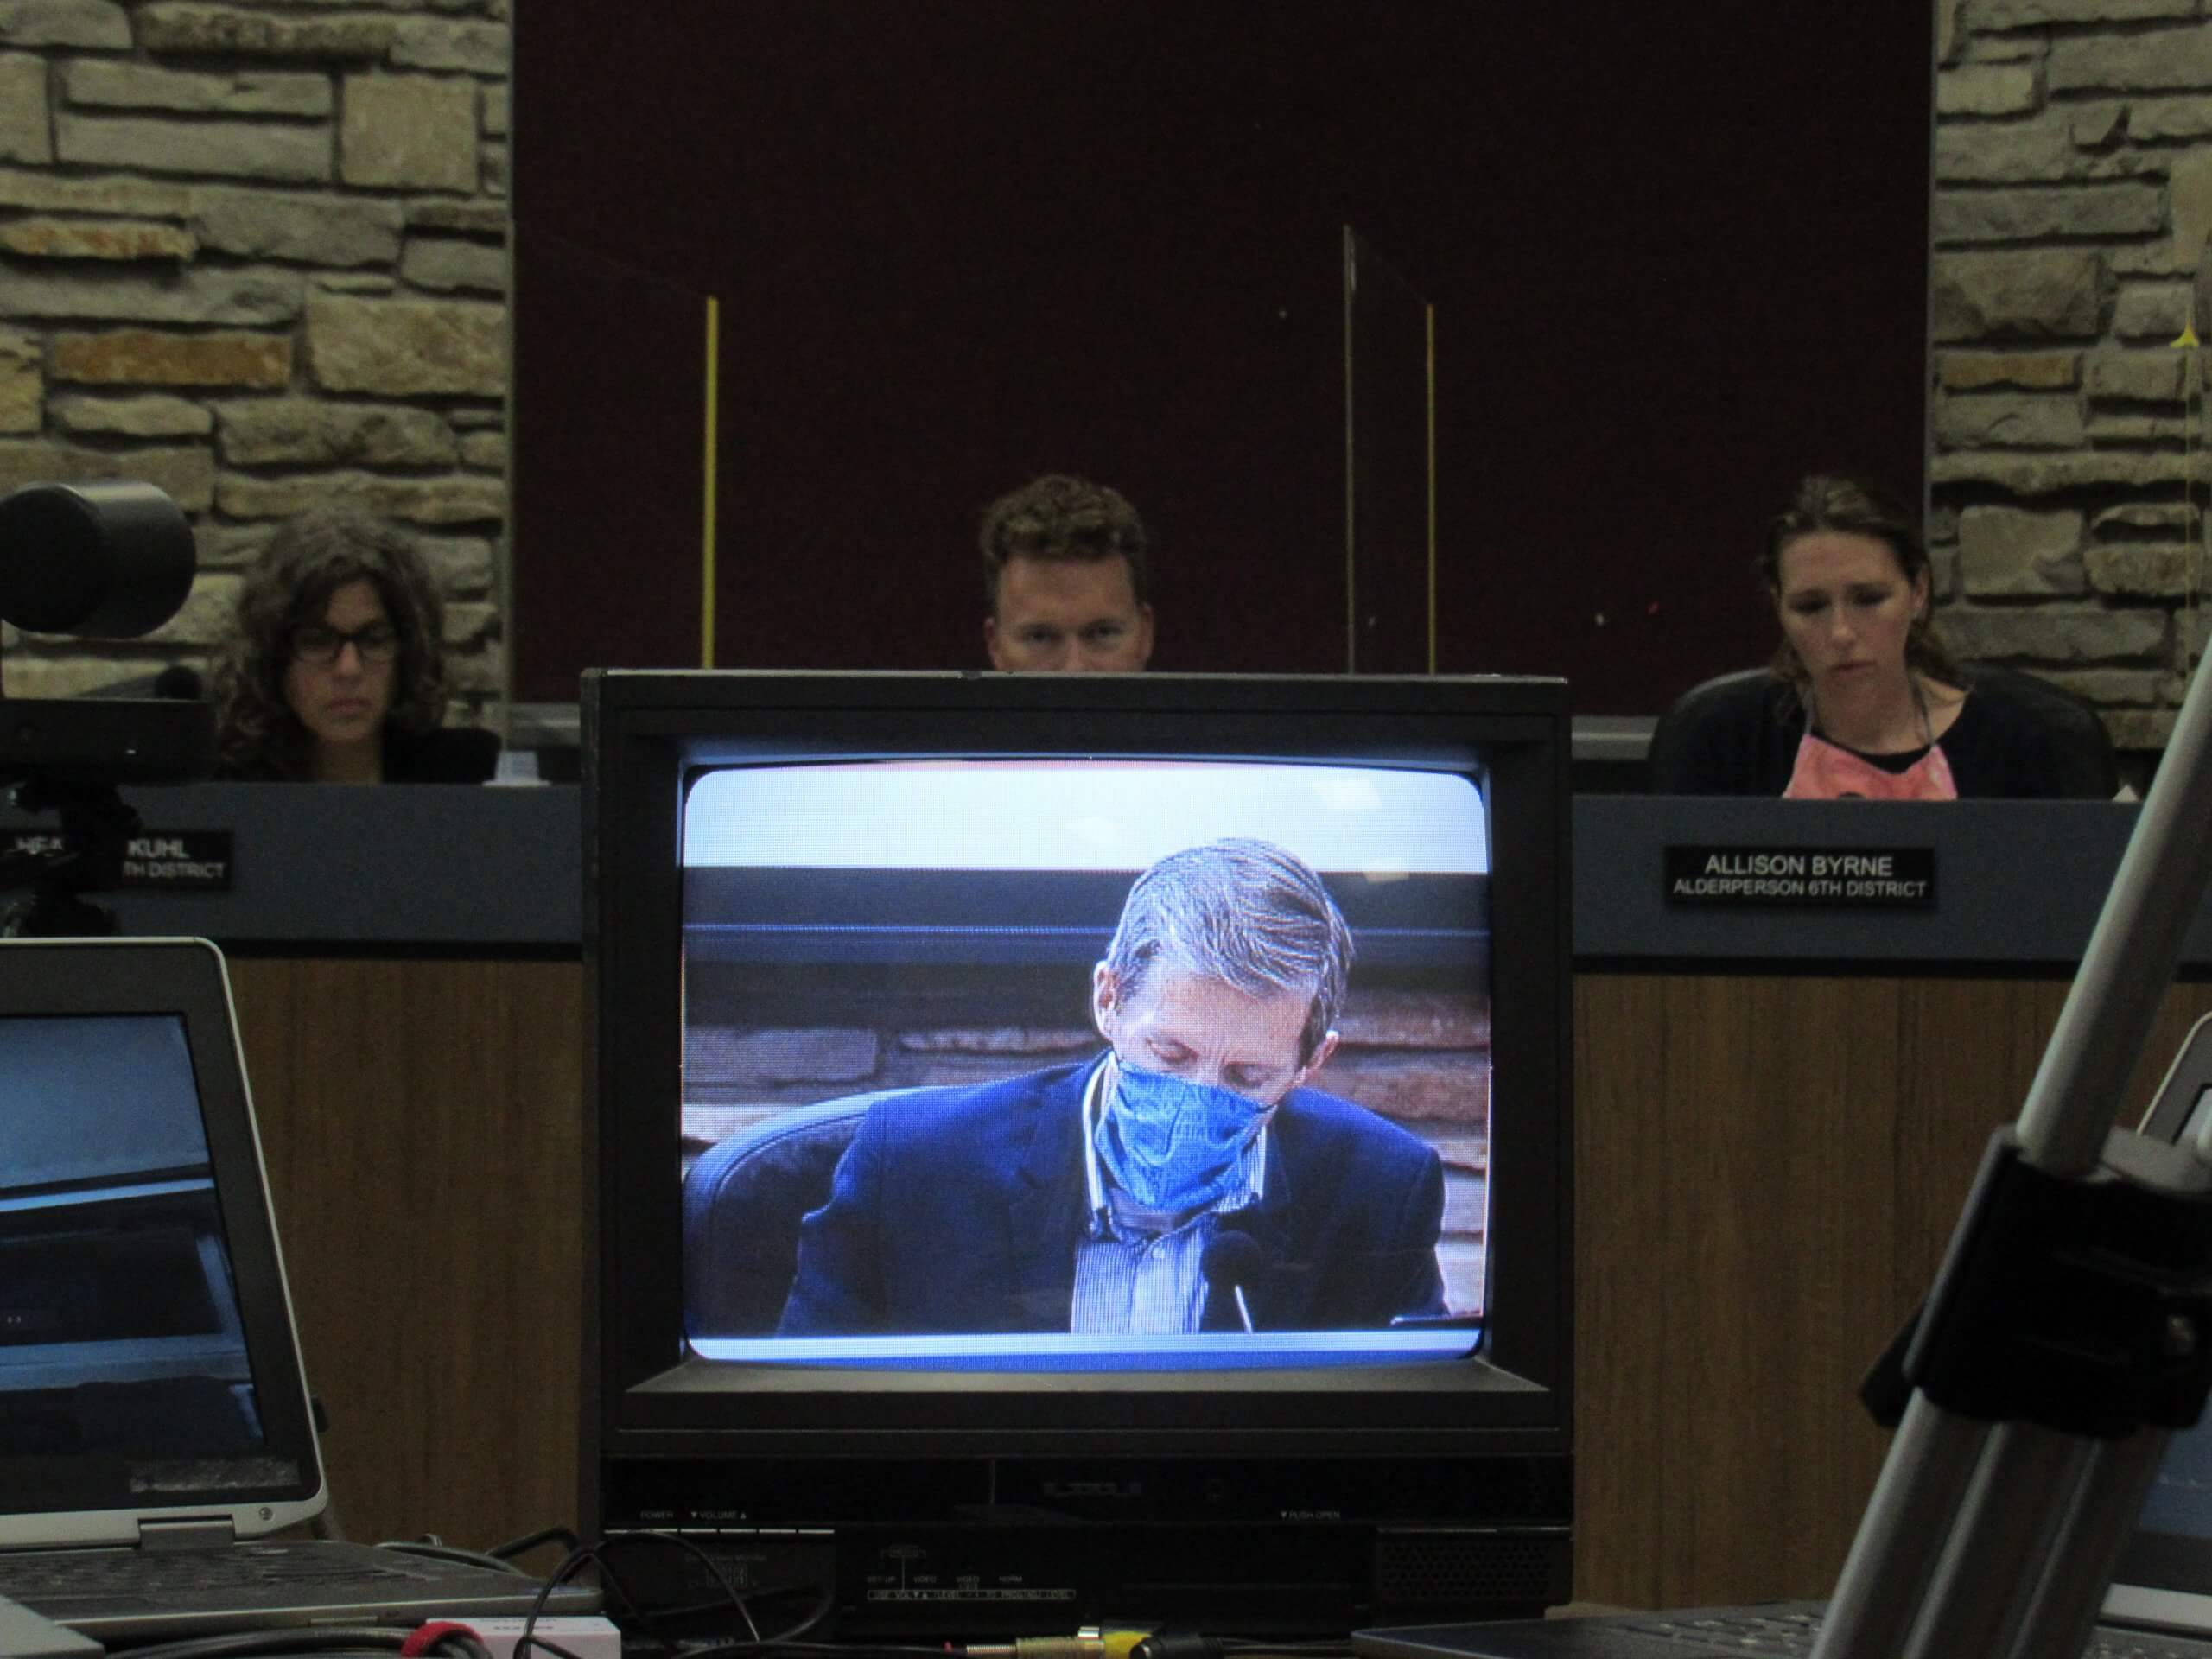 A monitor showing Wauwatosa Mayor Dennis McBride. (Photo by Isiah Holmes)